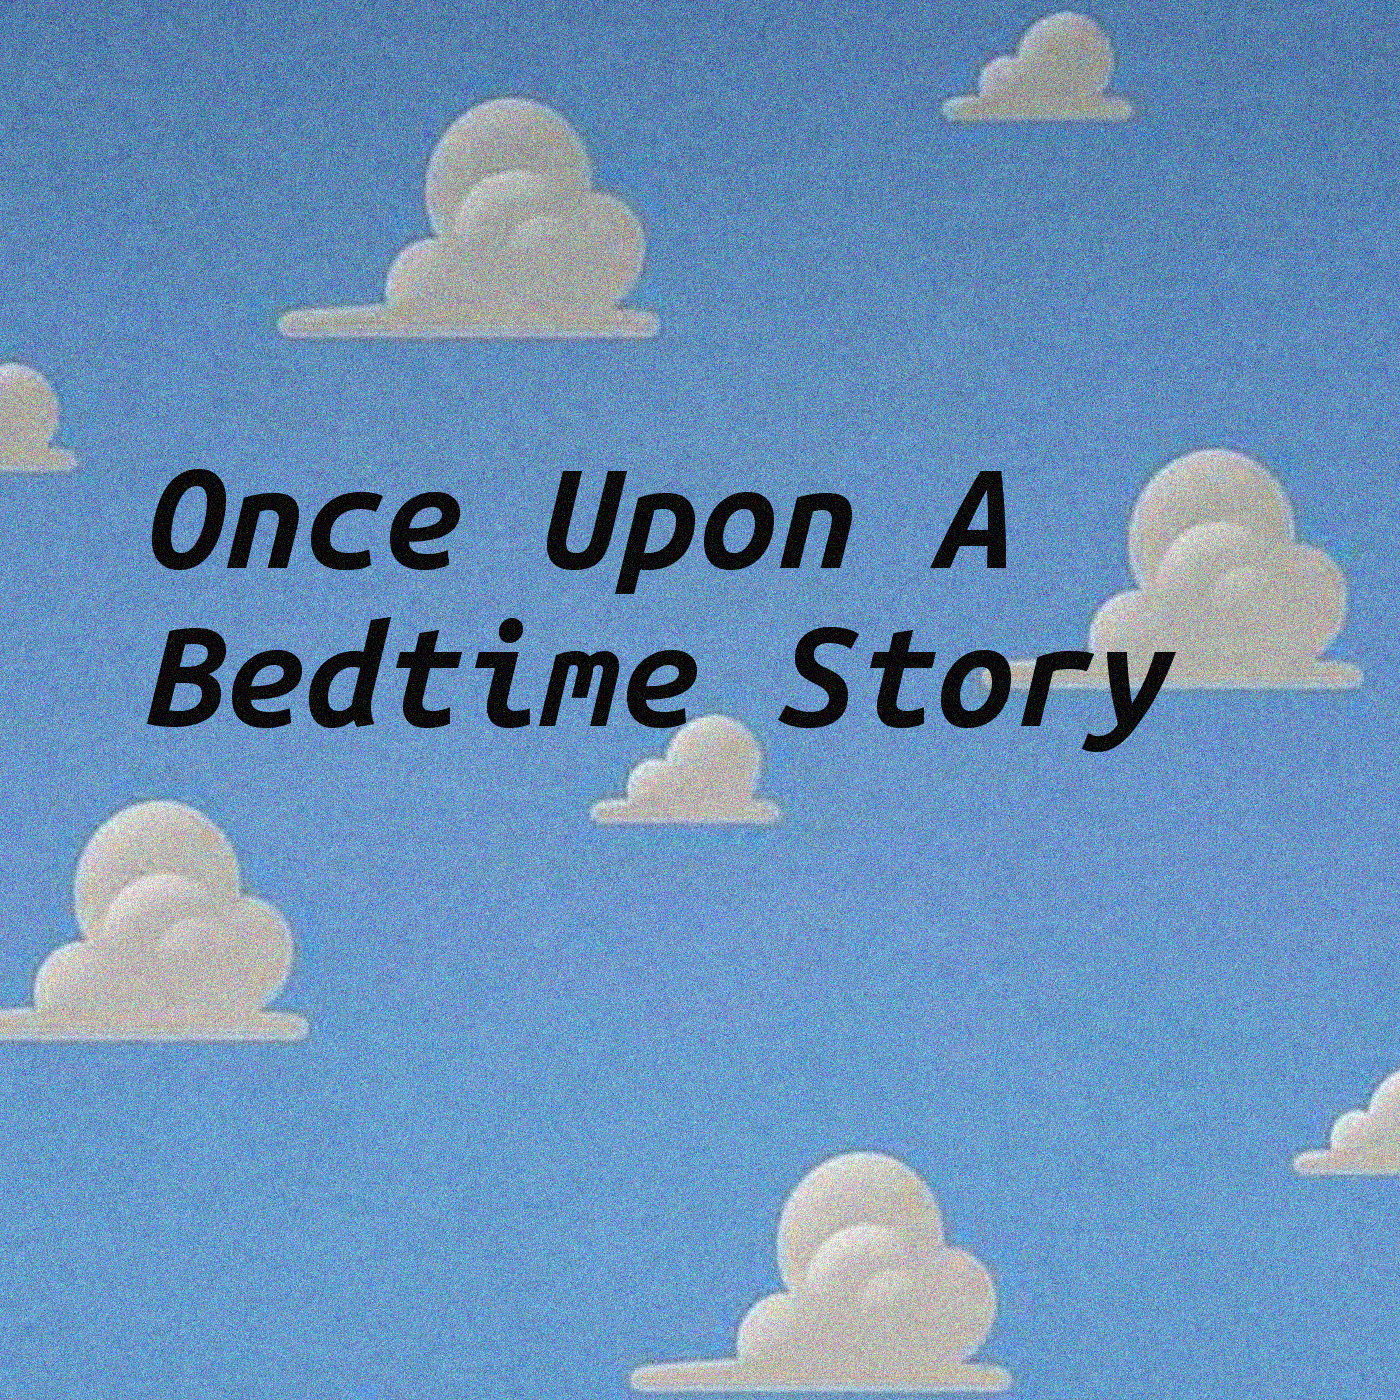 Images of Bedtime Stories | 1400x1400